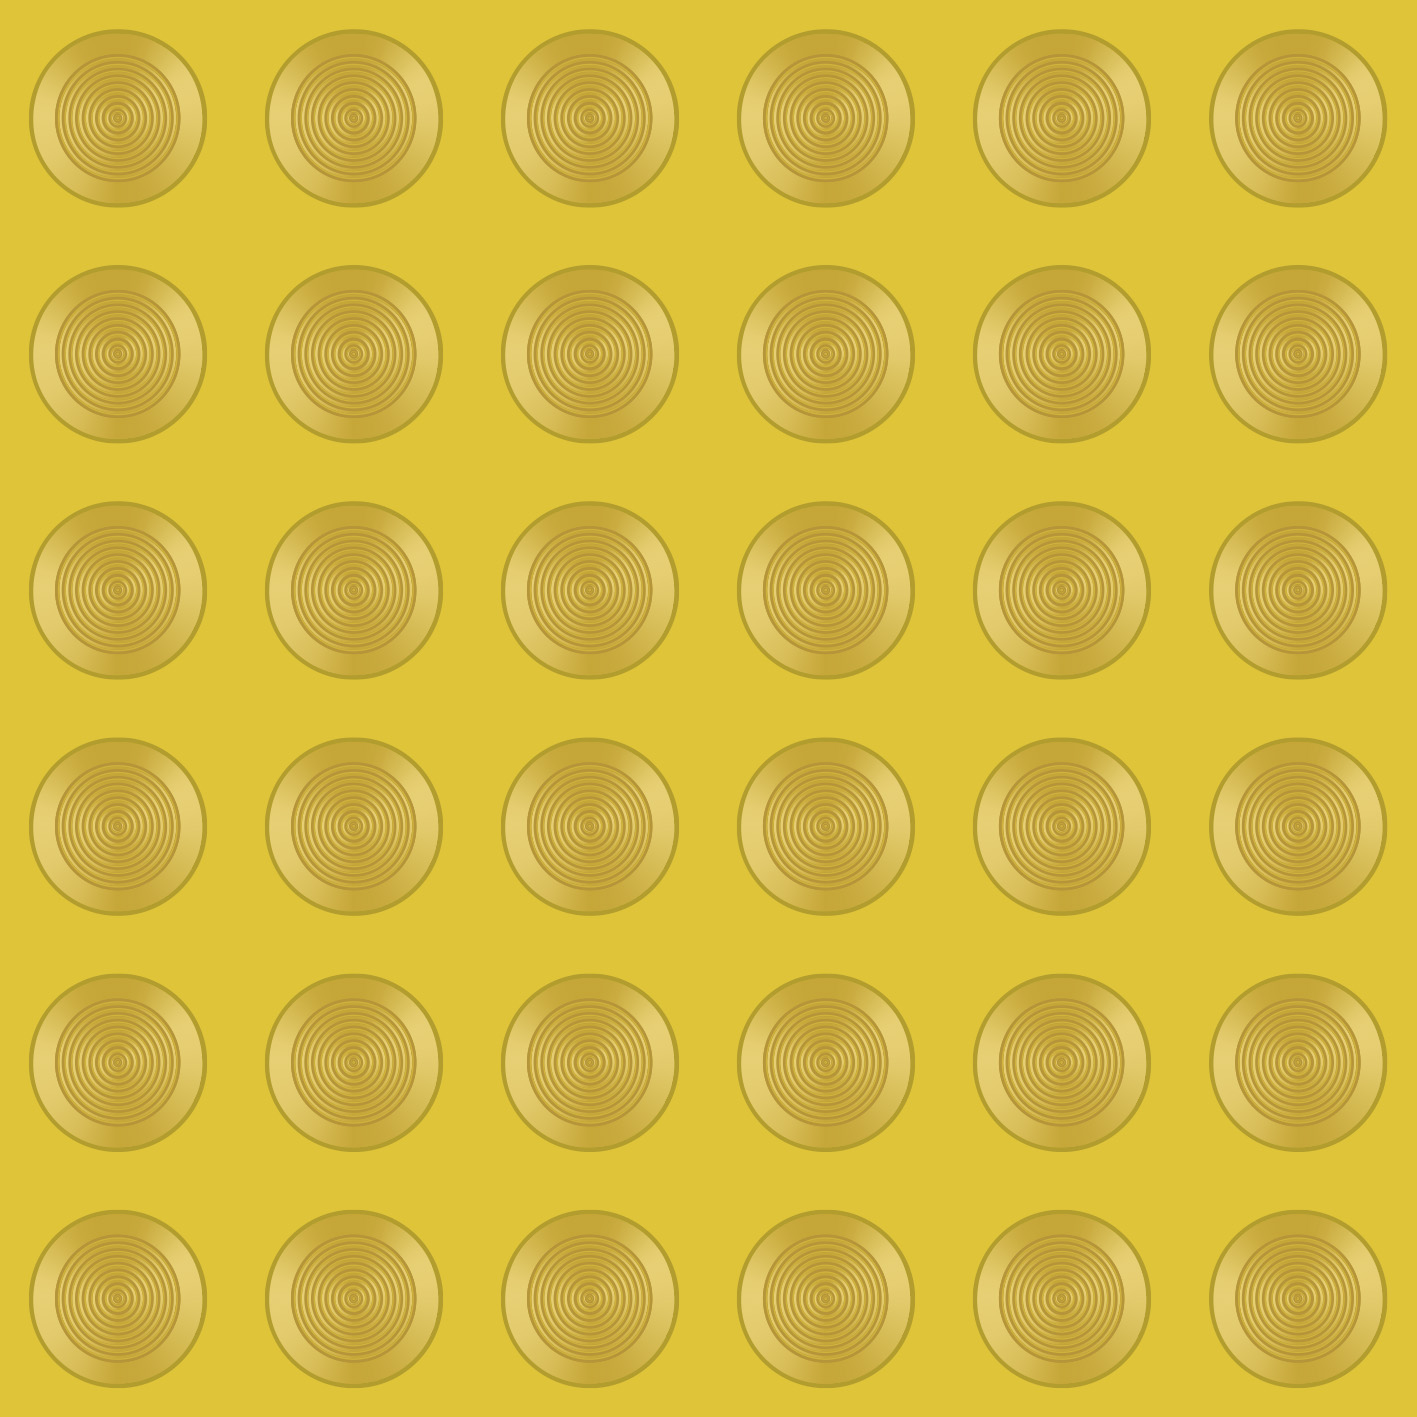 300x 300 Yellow Tactile Pad